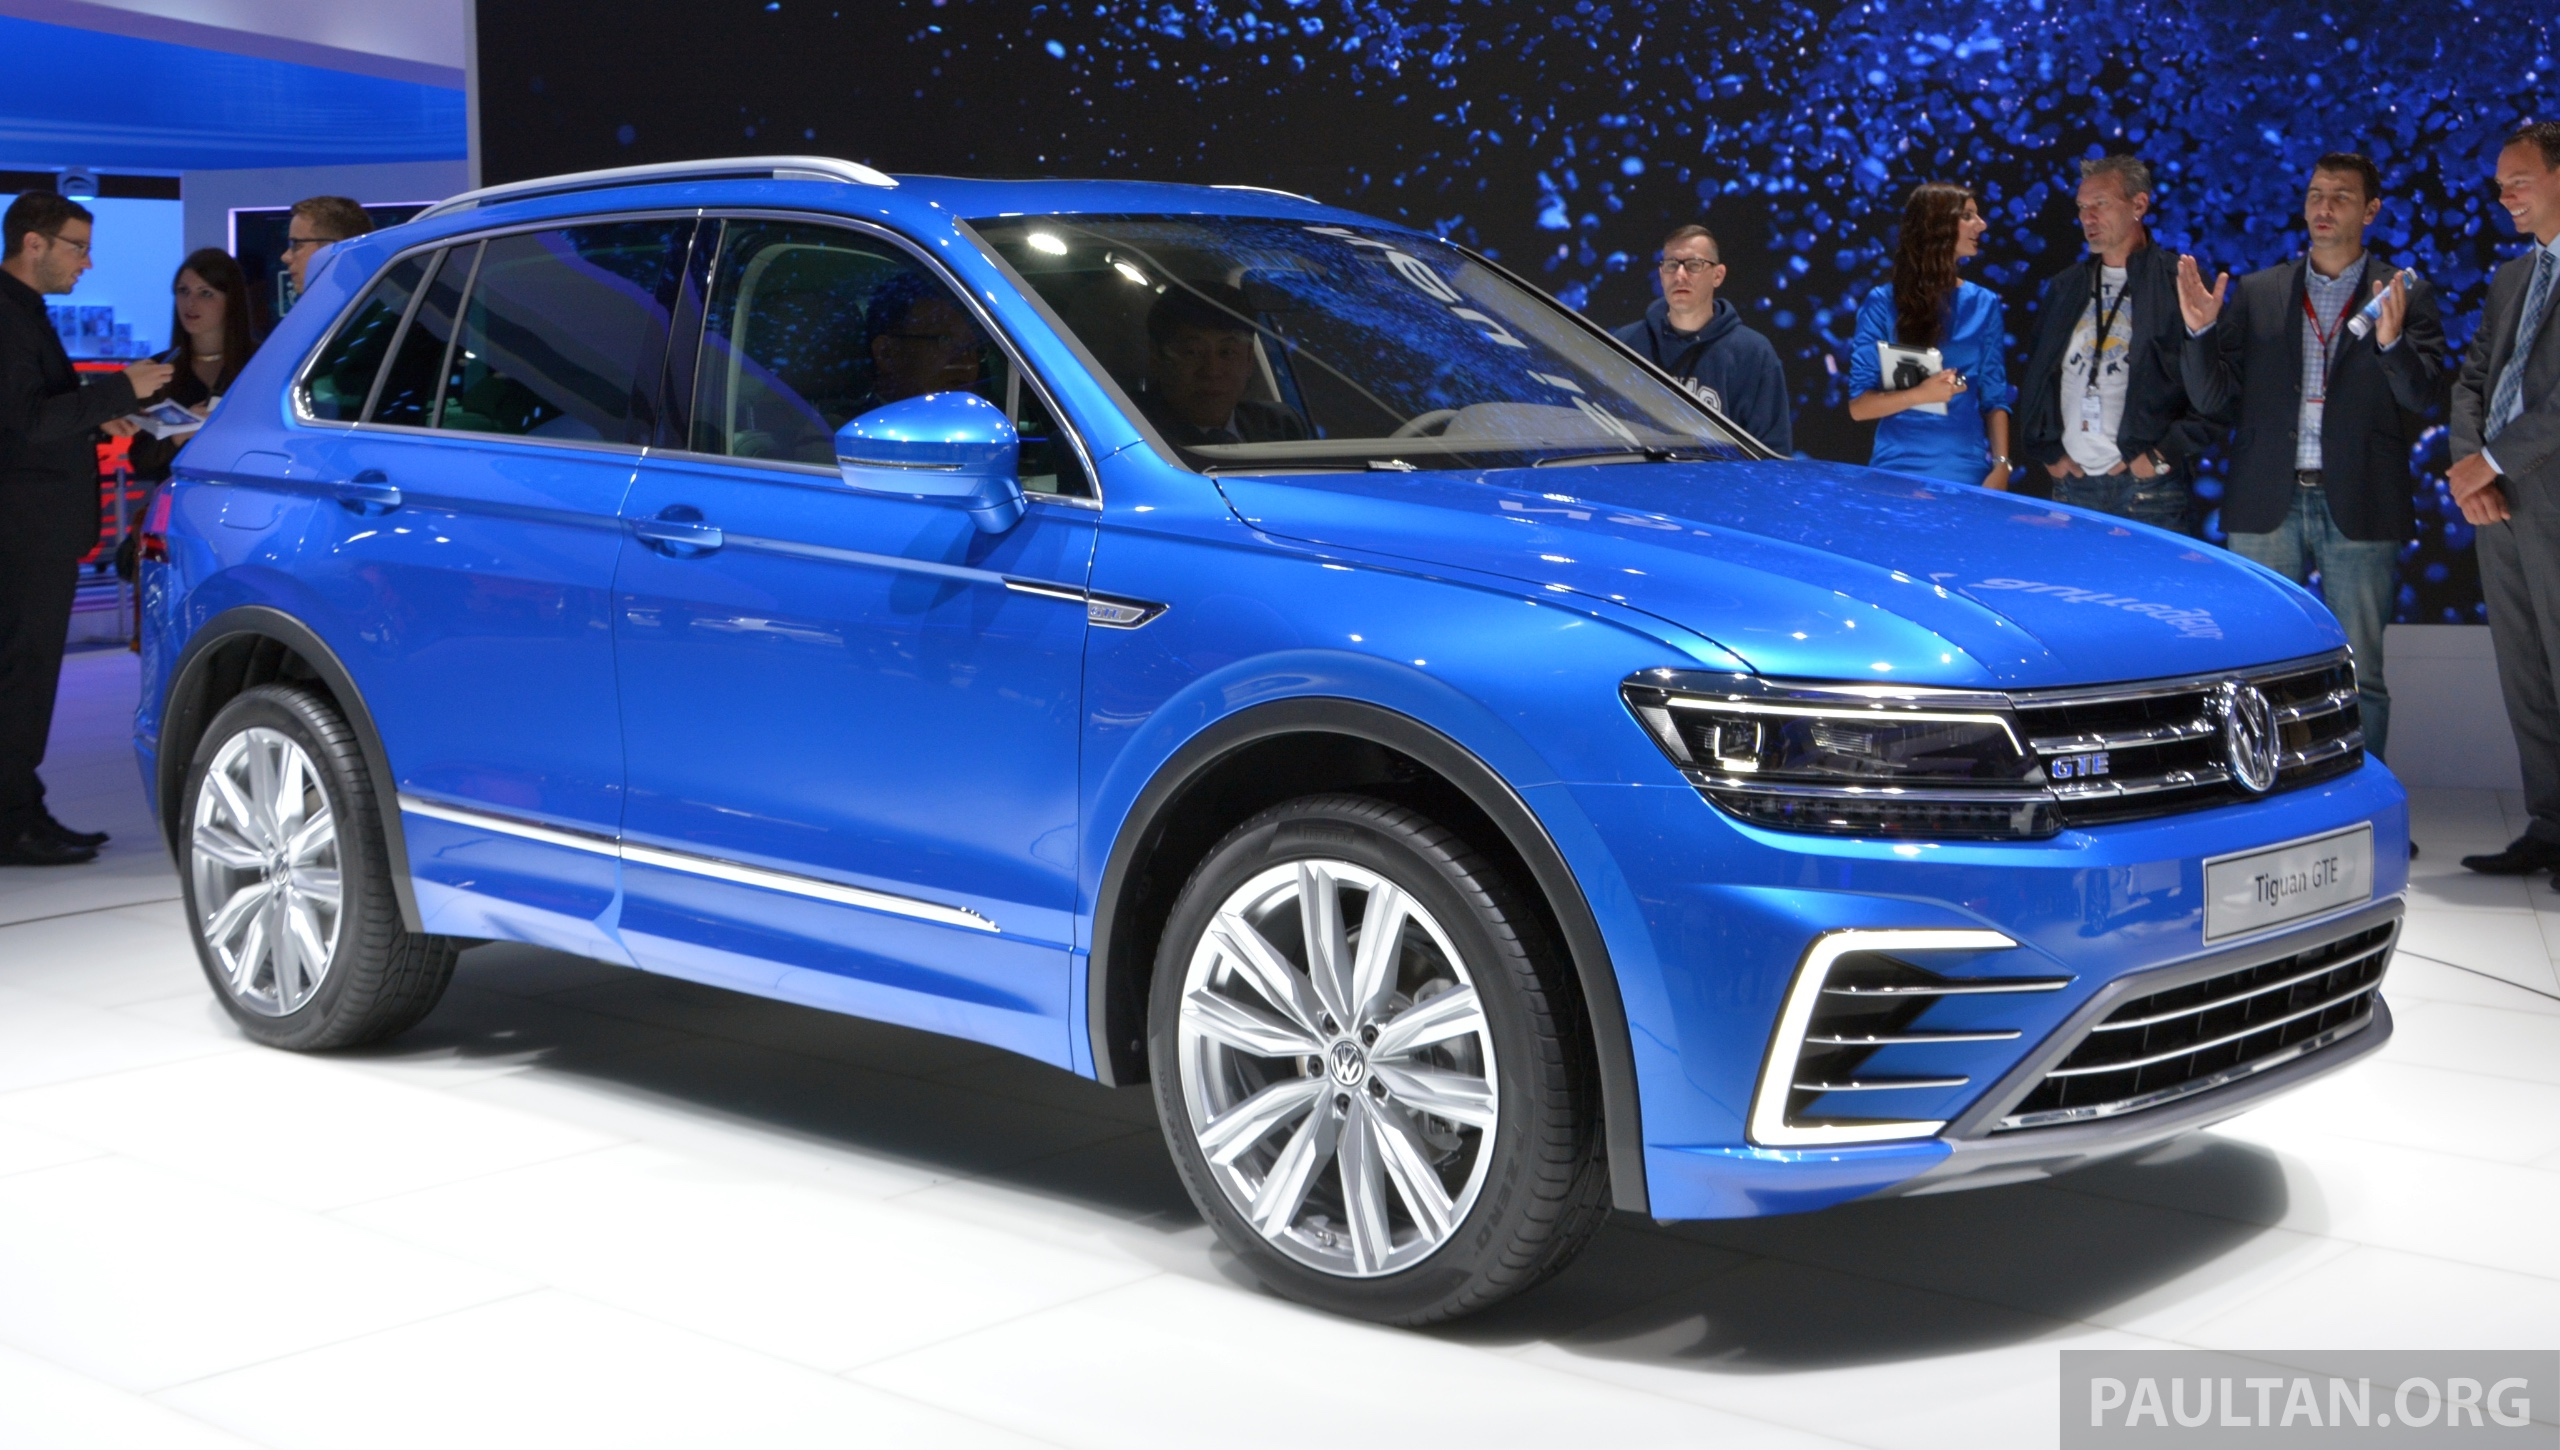 gallery volkswagen tiguan gte and r line at iaa image 380899. Black Bedroom Furniture Sets. Home Design Ideas